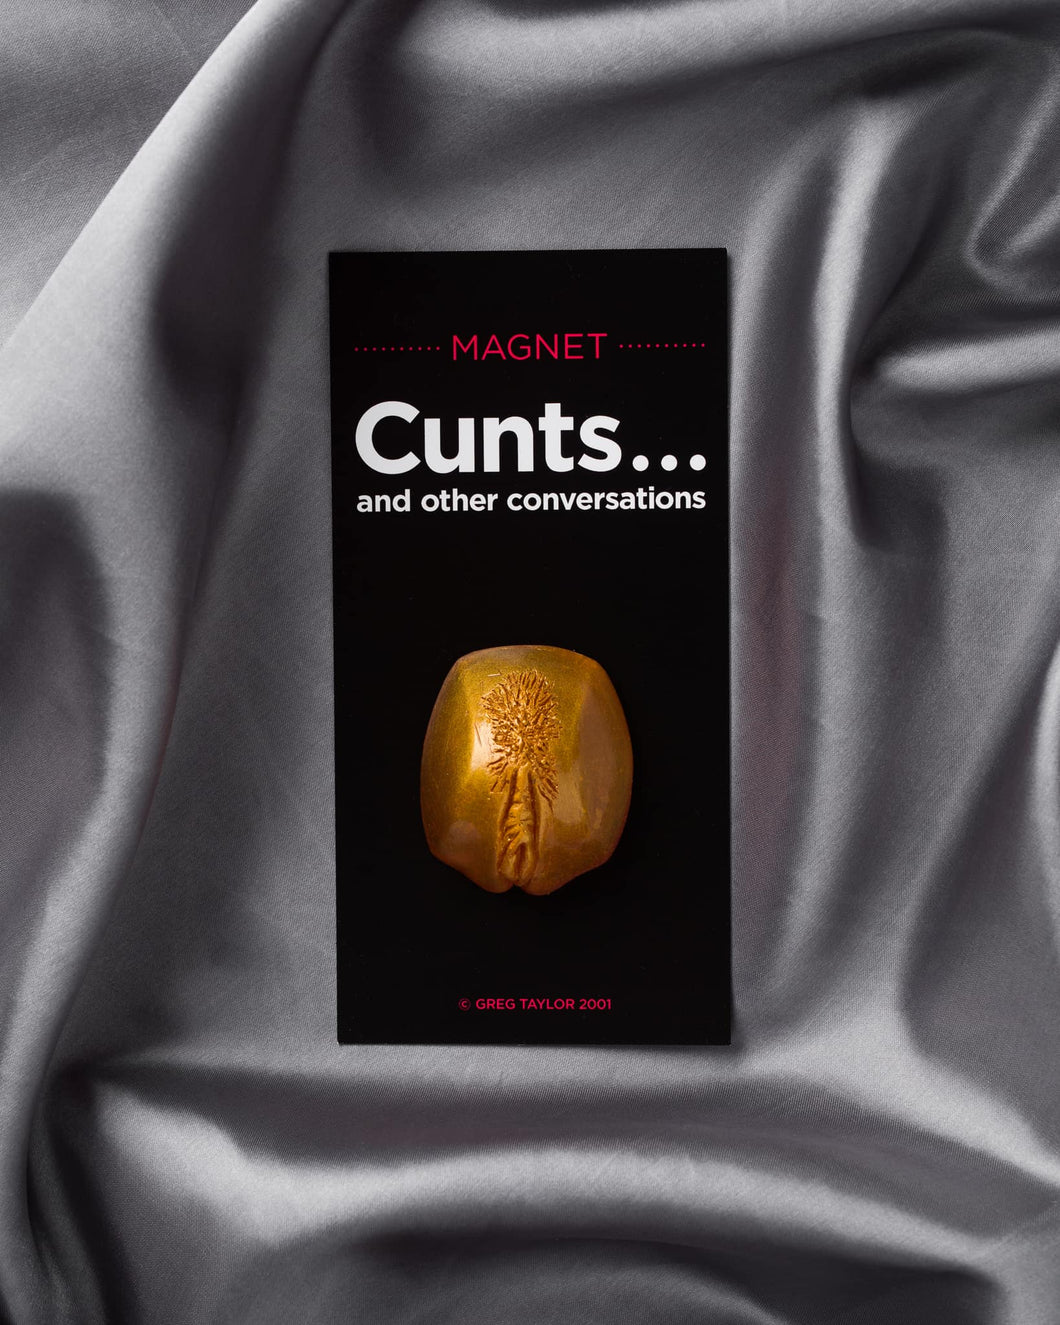 Gold Cunt Magnet